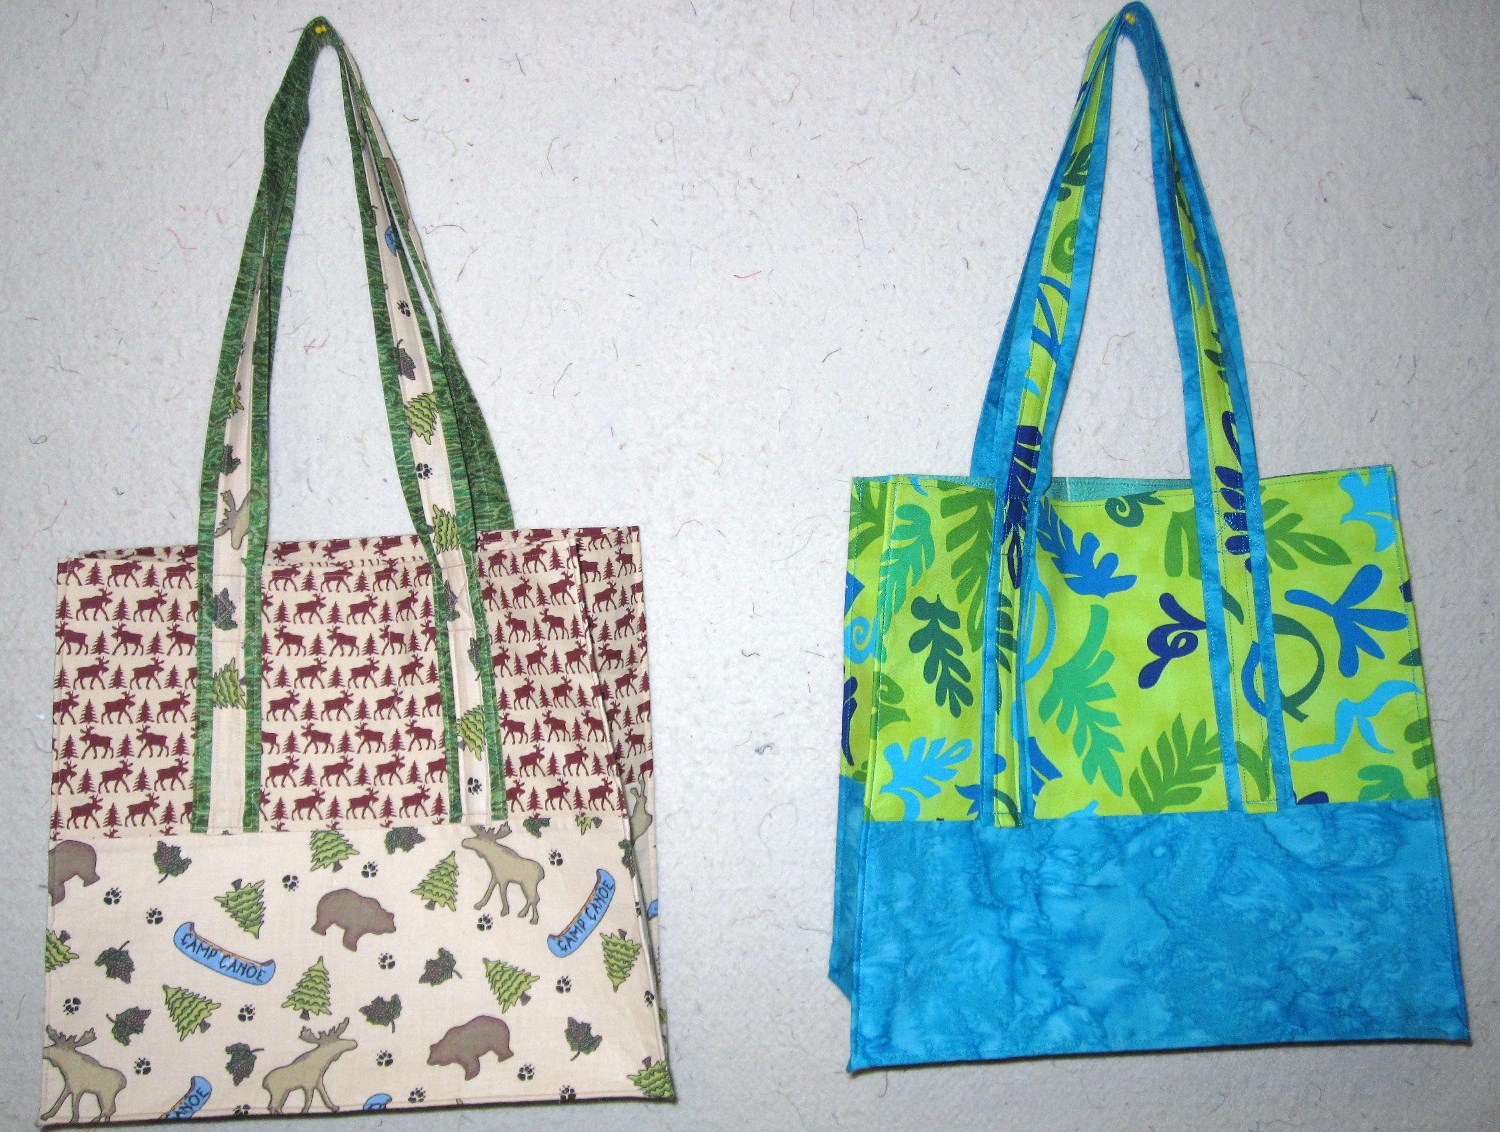 Quilt Inspiration: Free pattern day: Tote bags